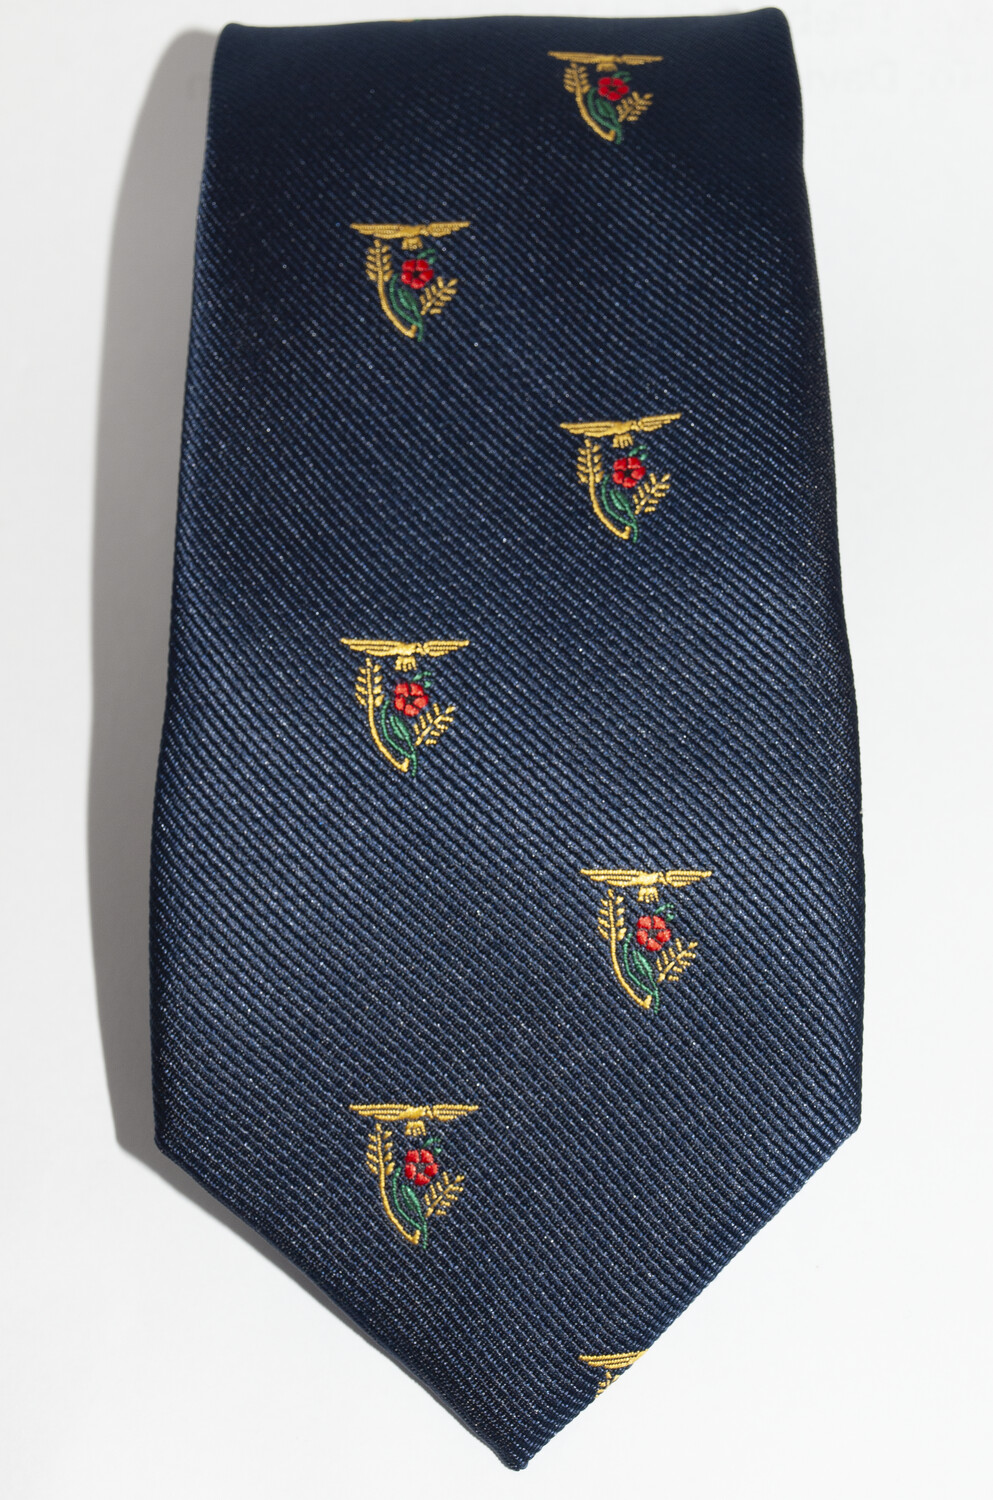 Trade Group 19 (TG19) Tie